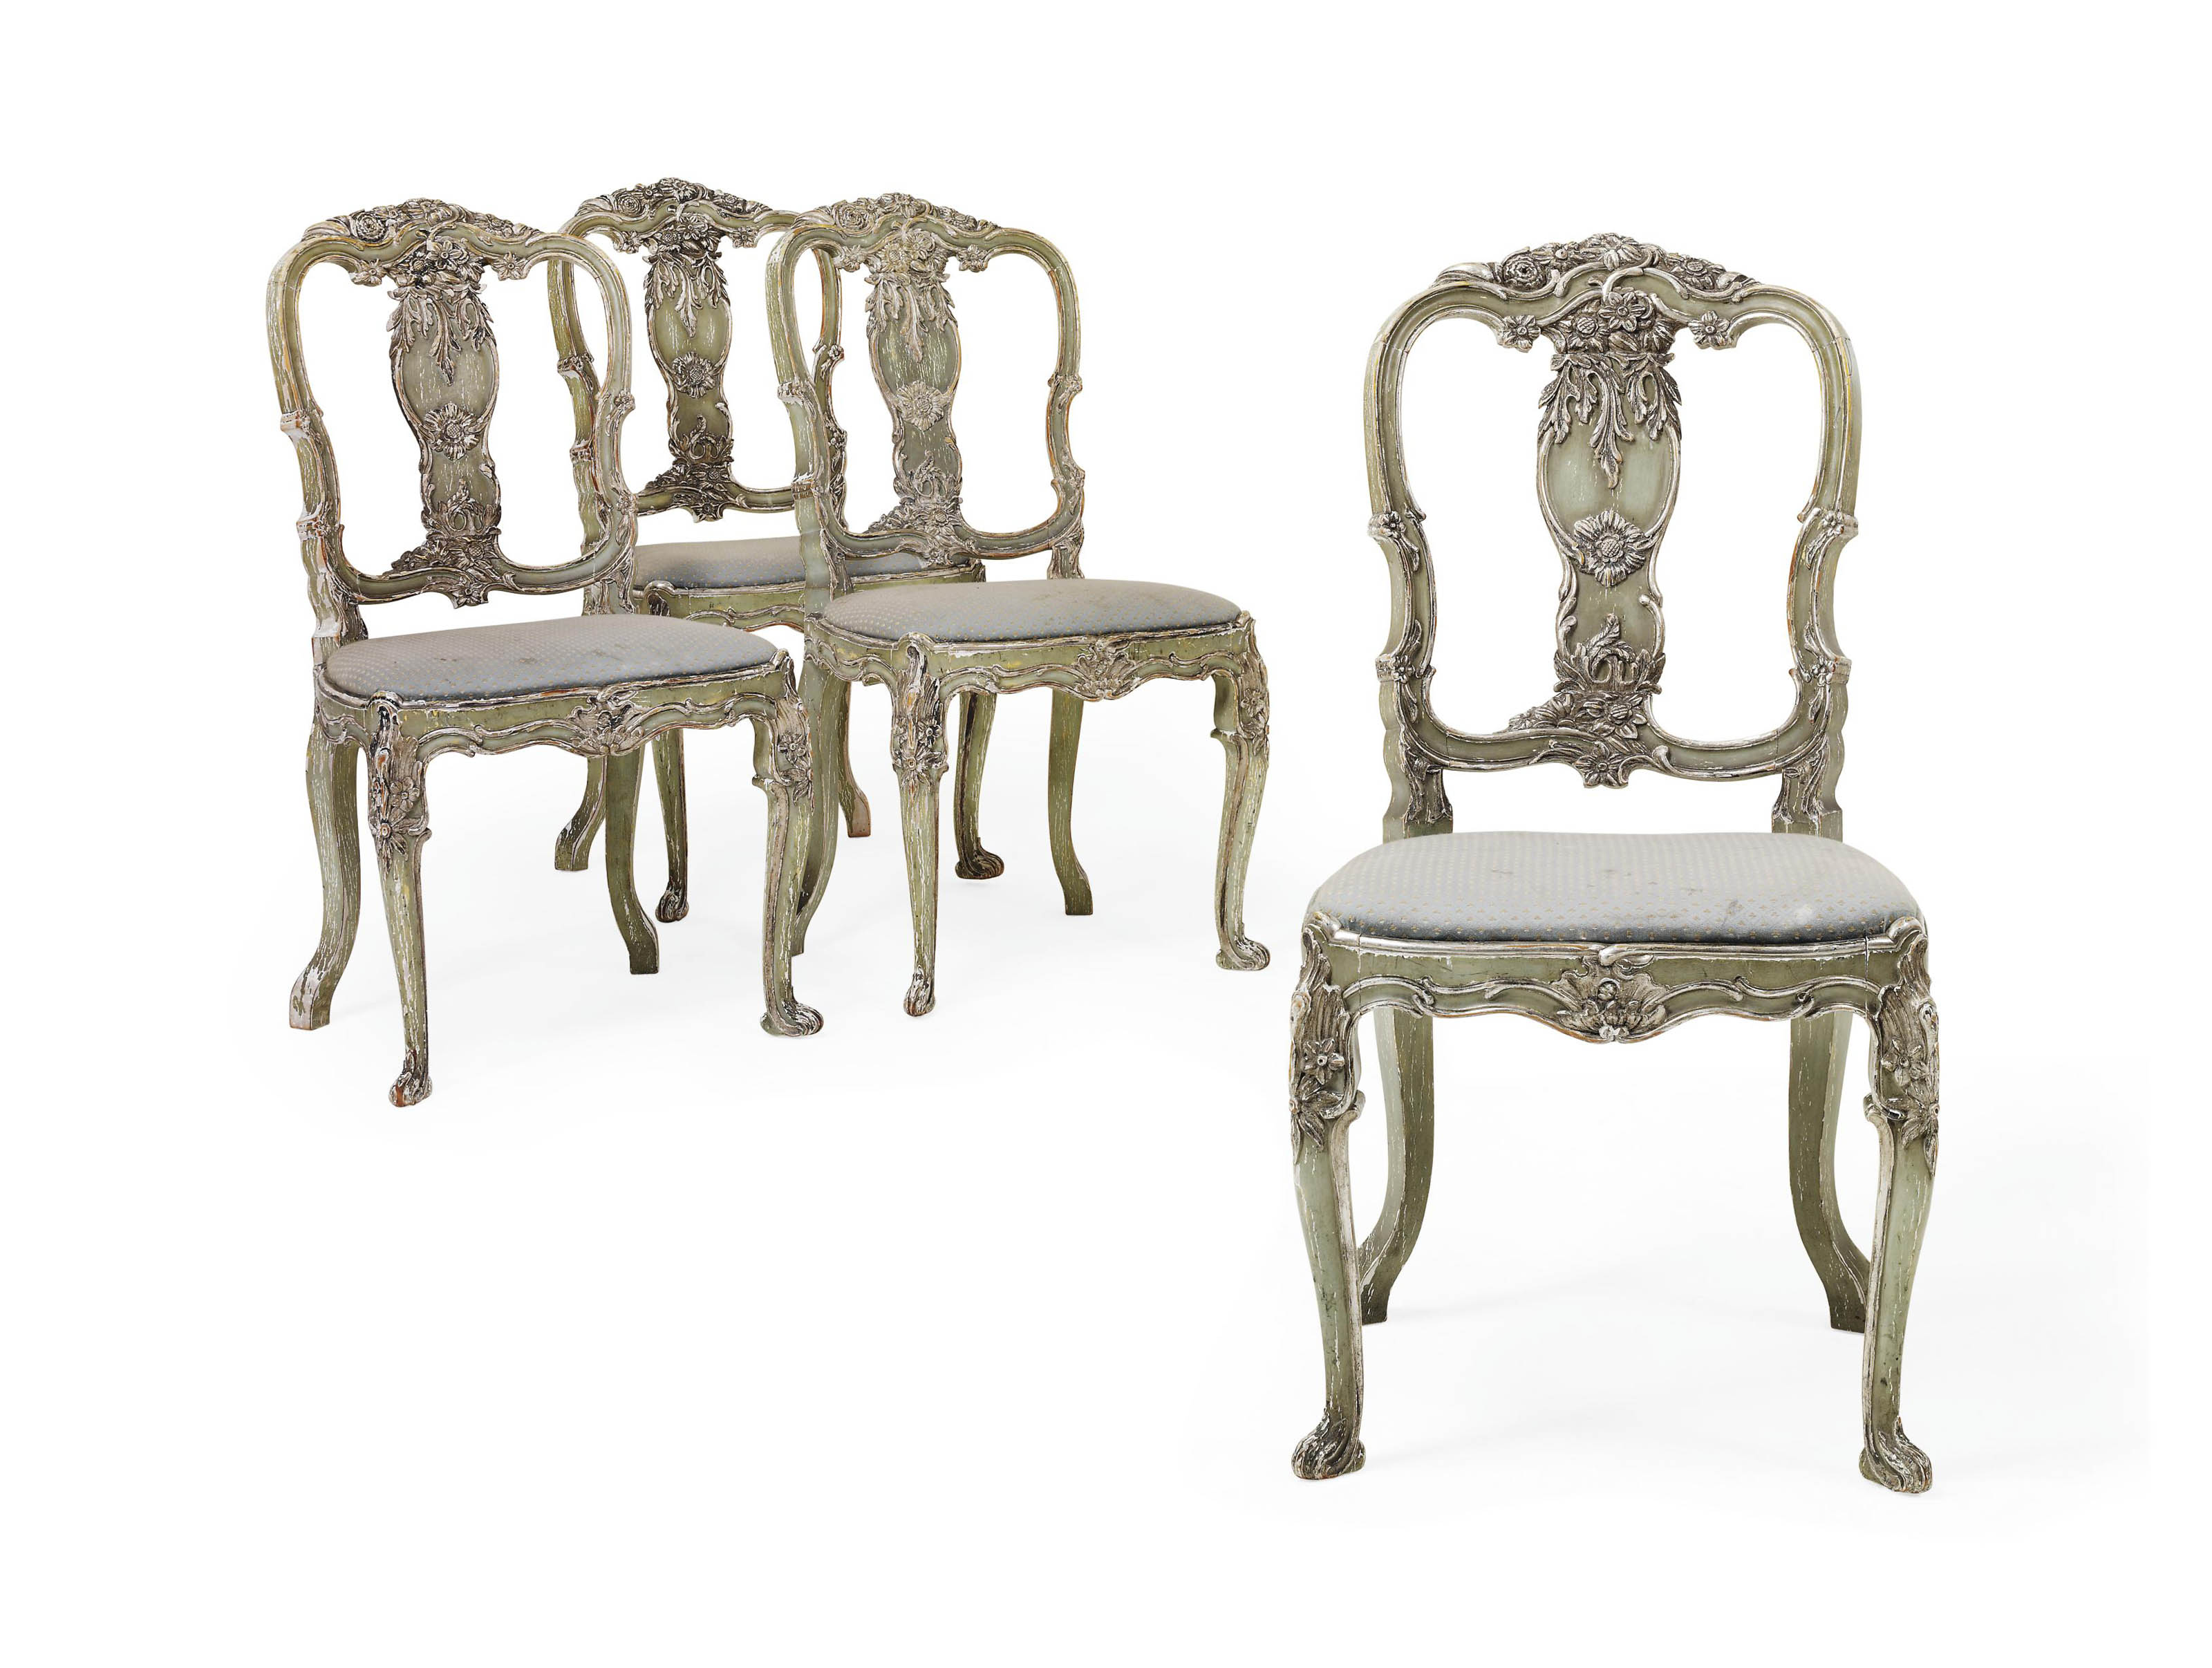 A SET OF FOUR AQUAMARINE-PAINTED AND SILVERED DINING CHAIRS